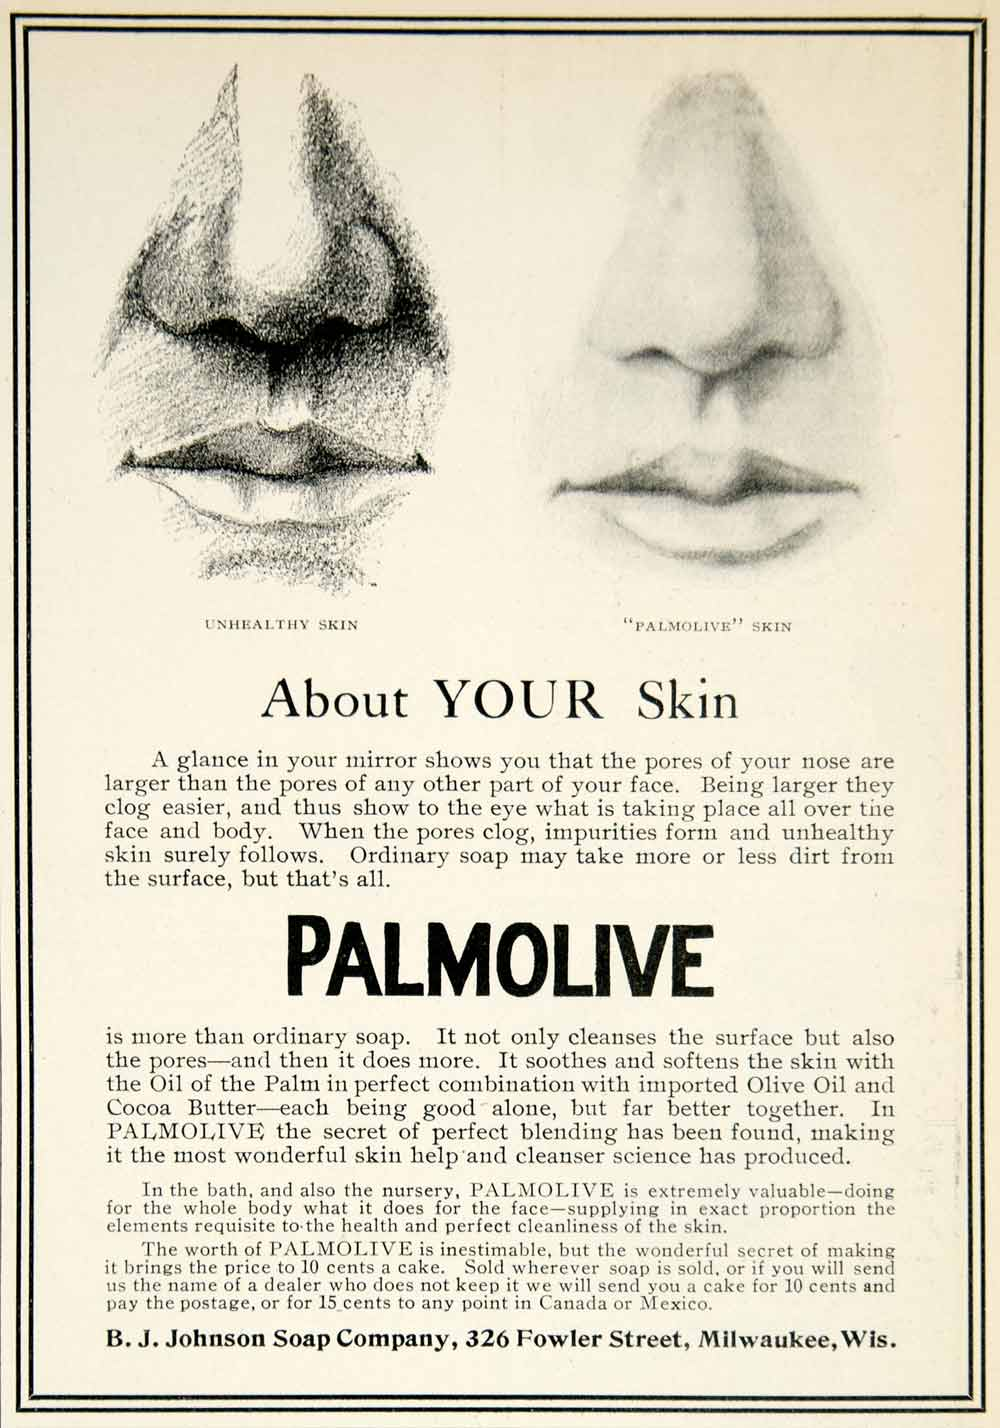 1905 Ad Palmolive BJ Johnson Soap 326 Fowler St Milwaukee Wisconsin Health YDL2